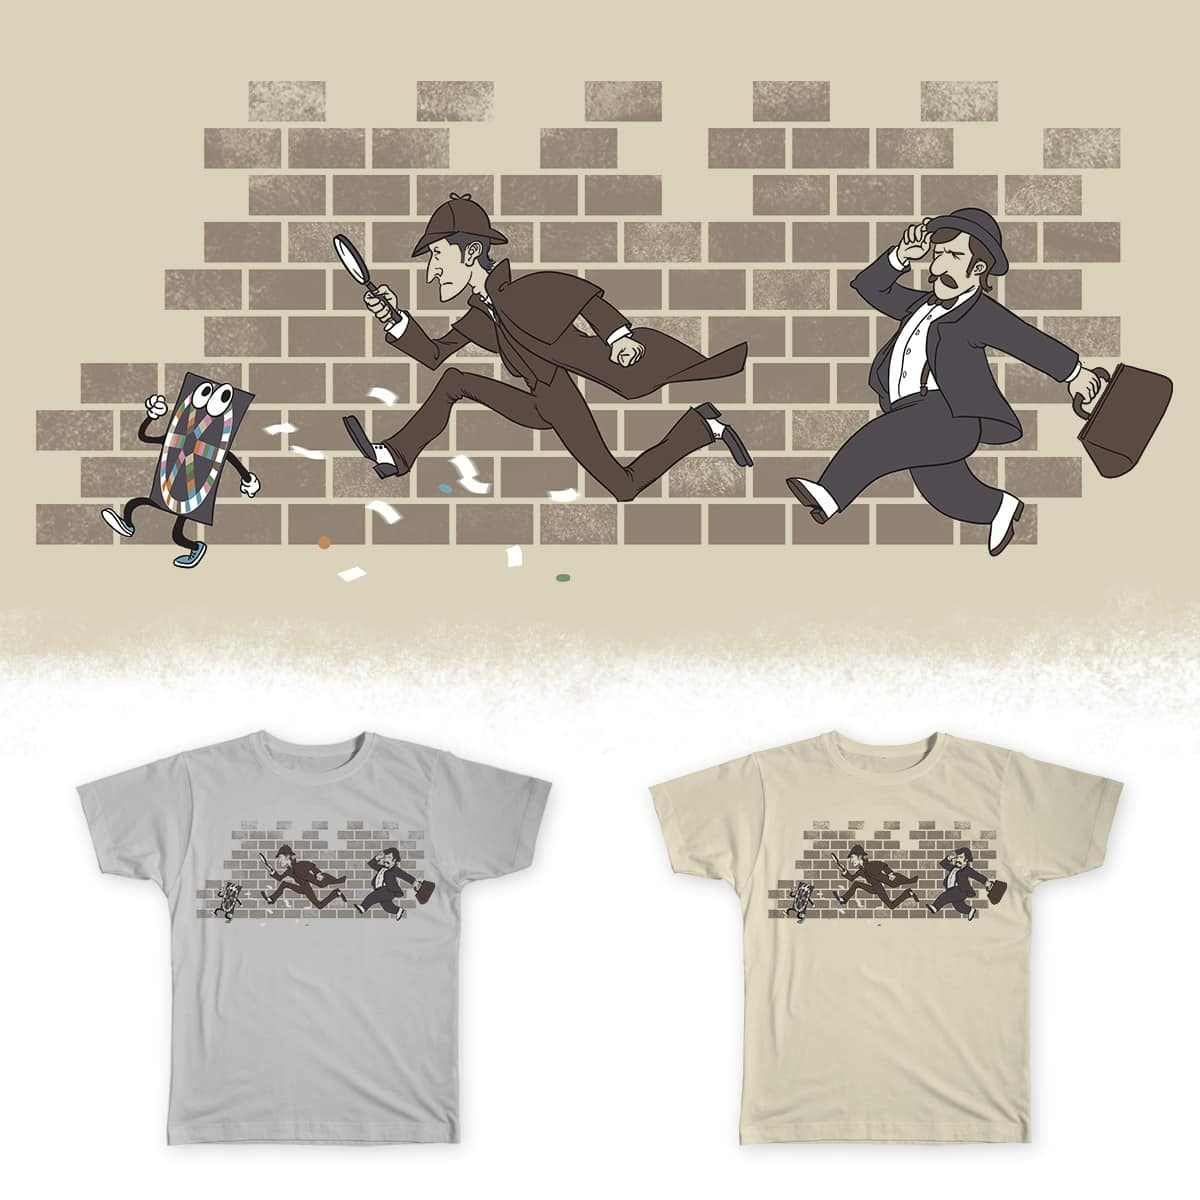 The Game is Afoot by jasonbarton on Threadless